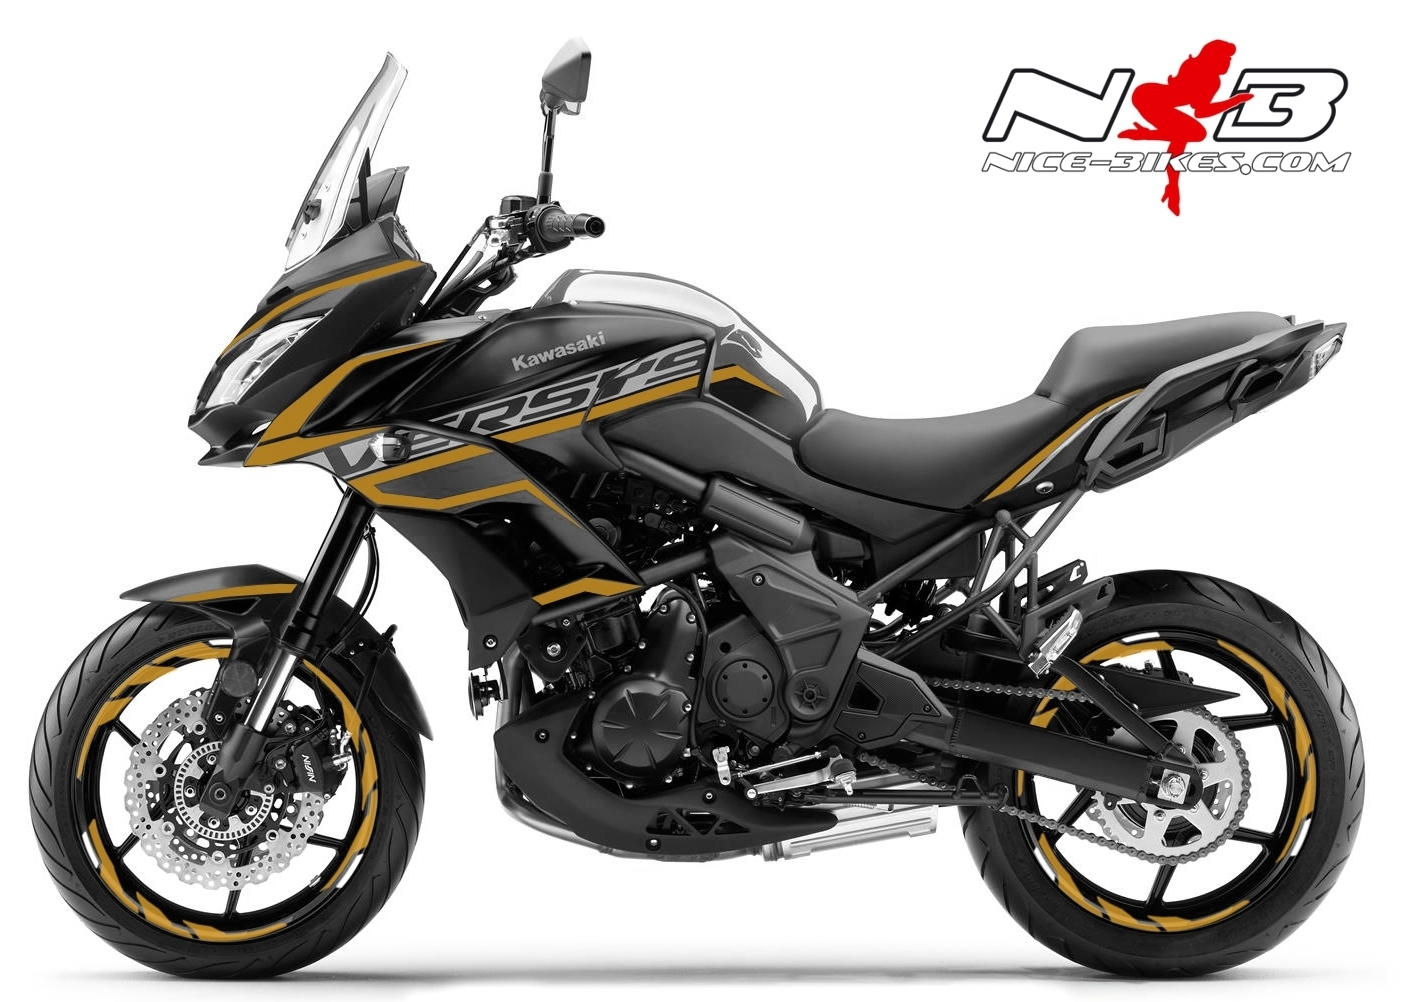 Foliendesign Kawasaki Versys 650 Bj. 2020 Olympic Gold